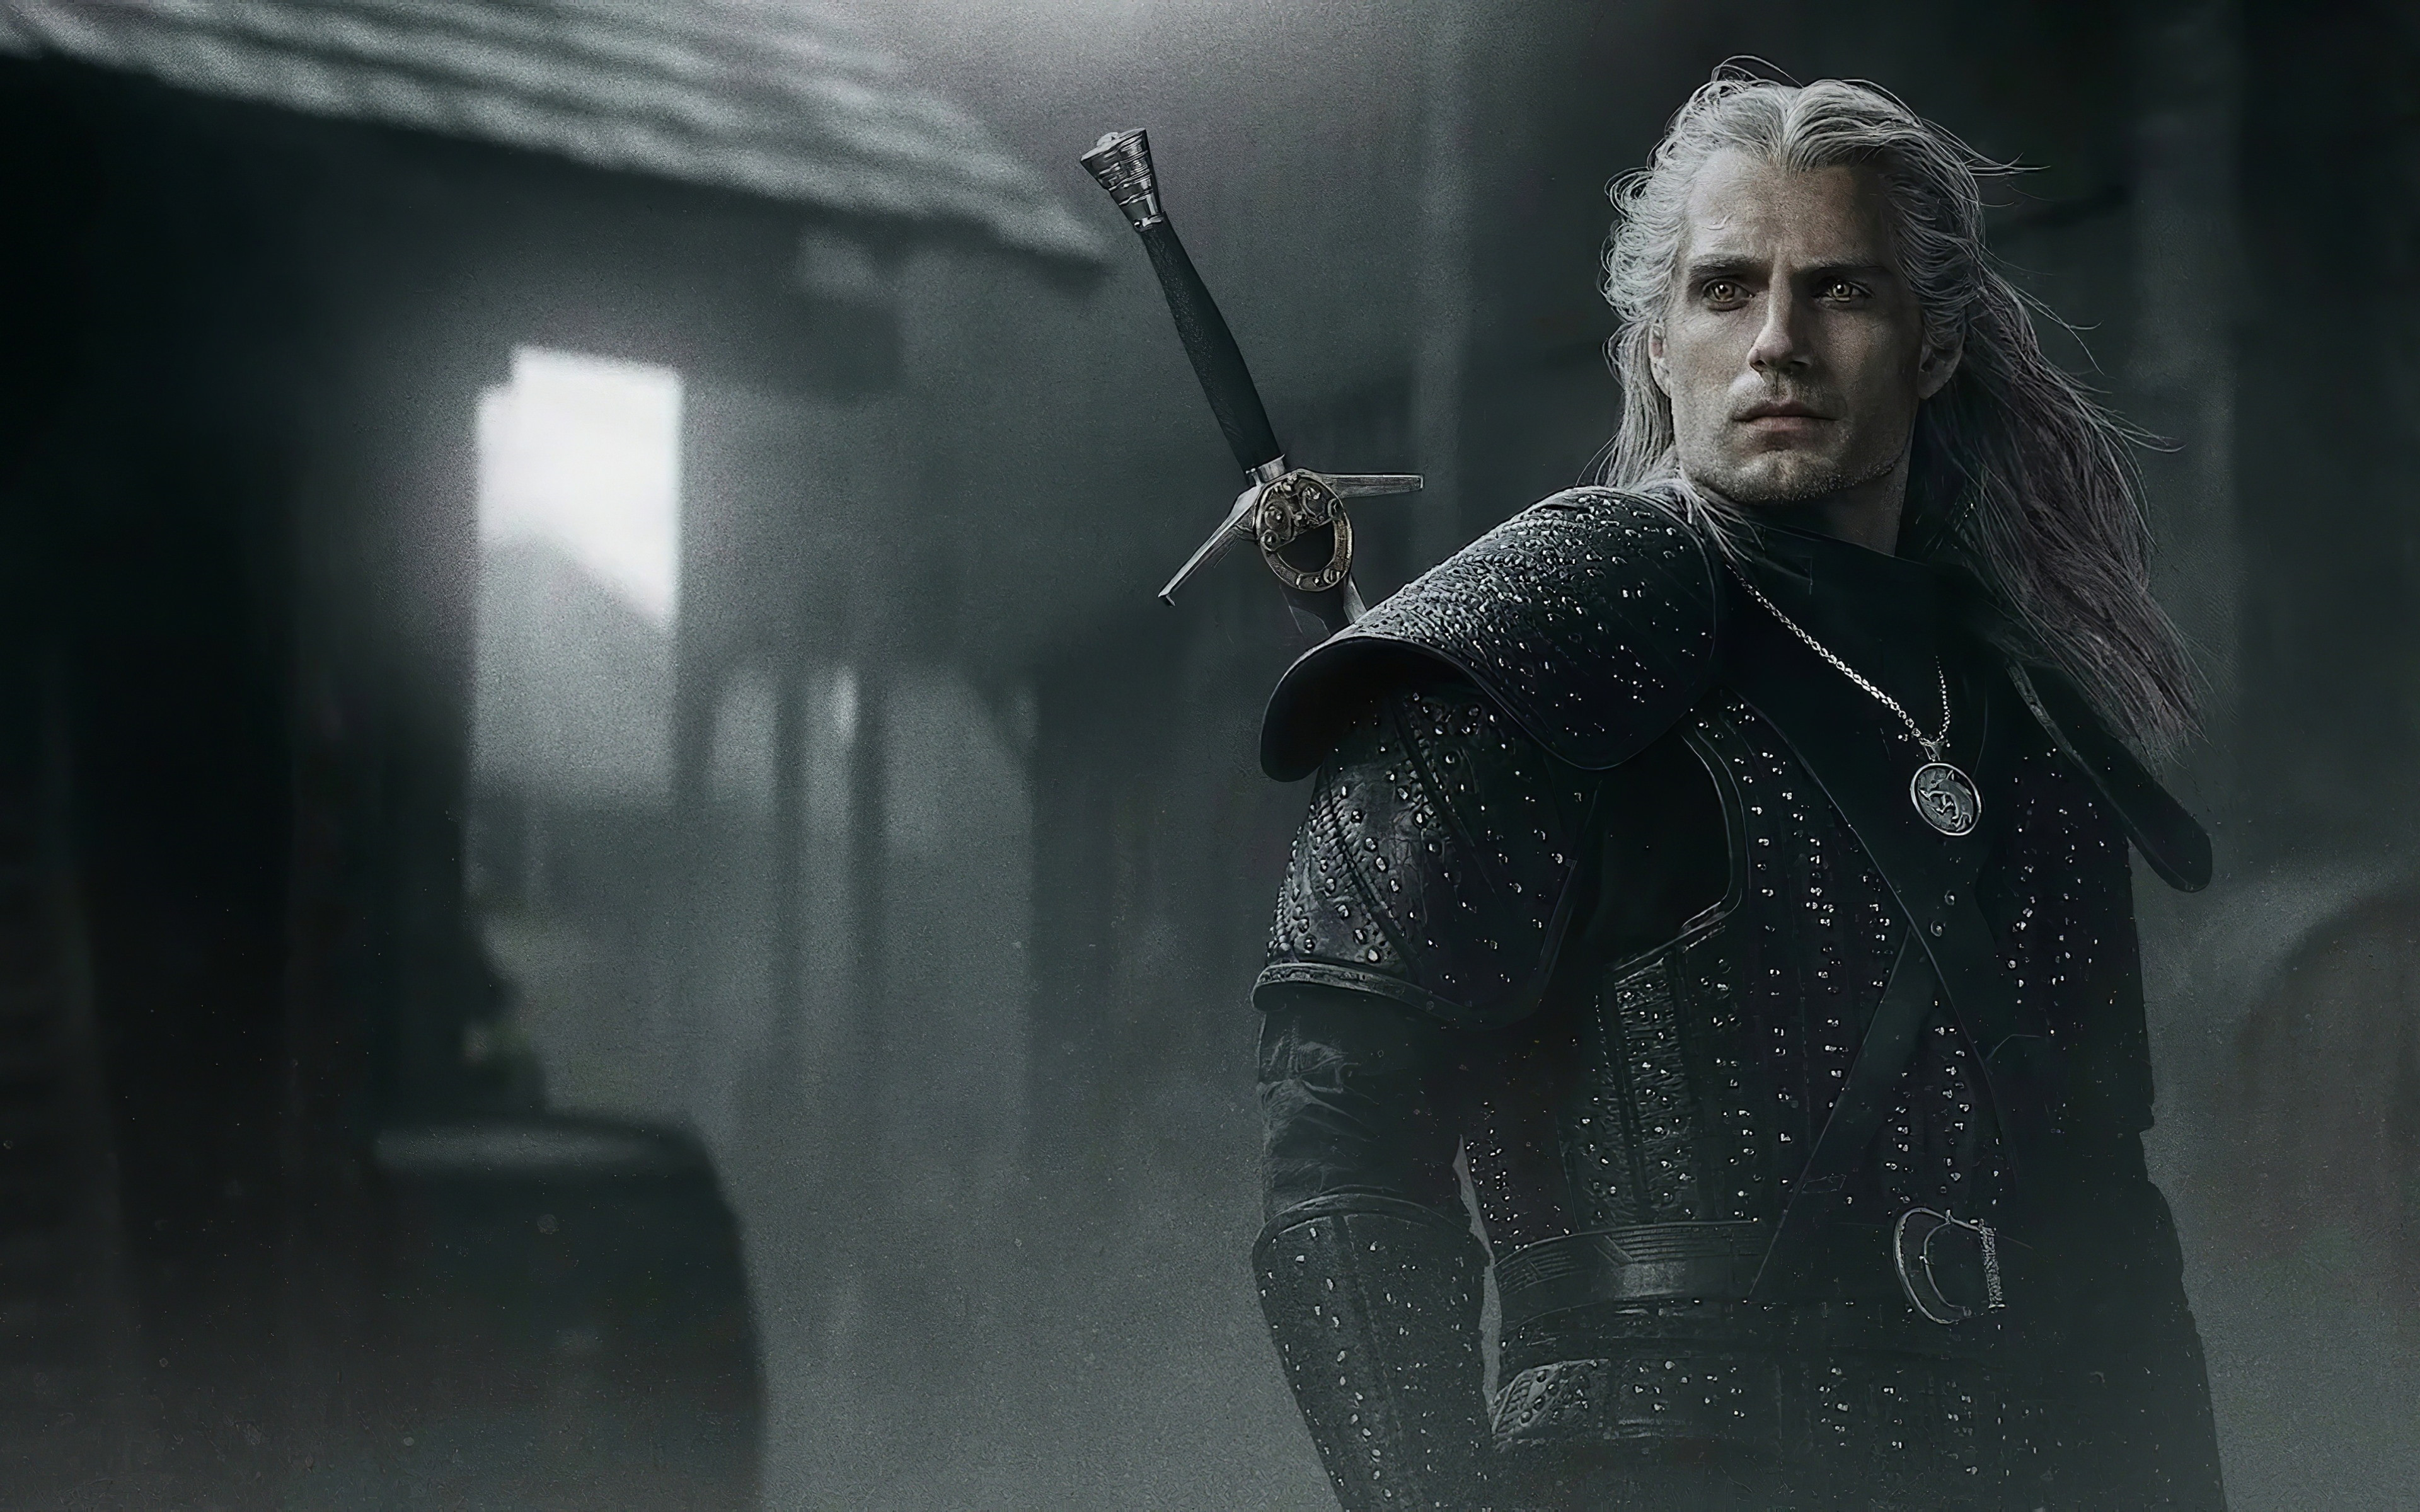 Henry Cavli in The Witcher wallpaper 3840x2400